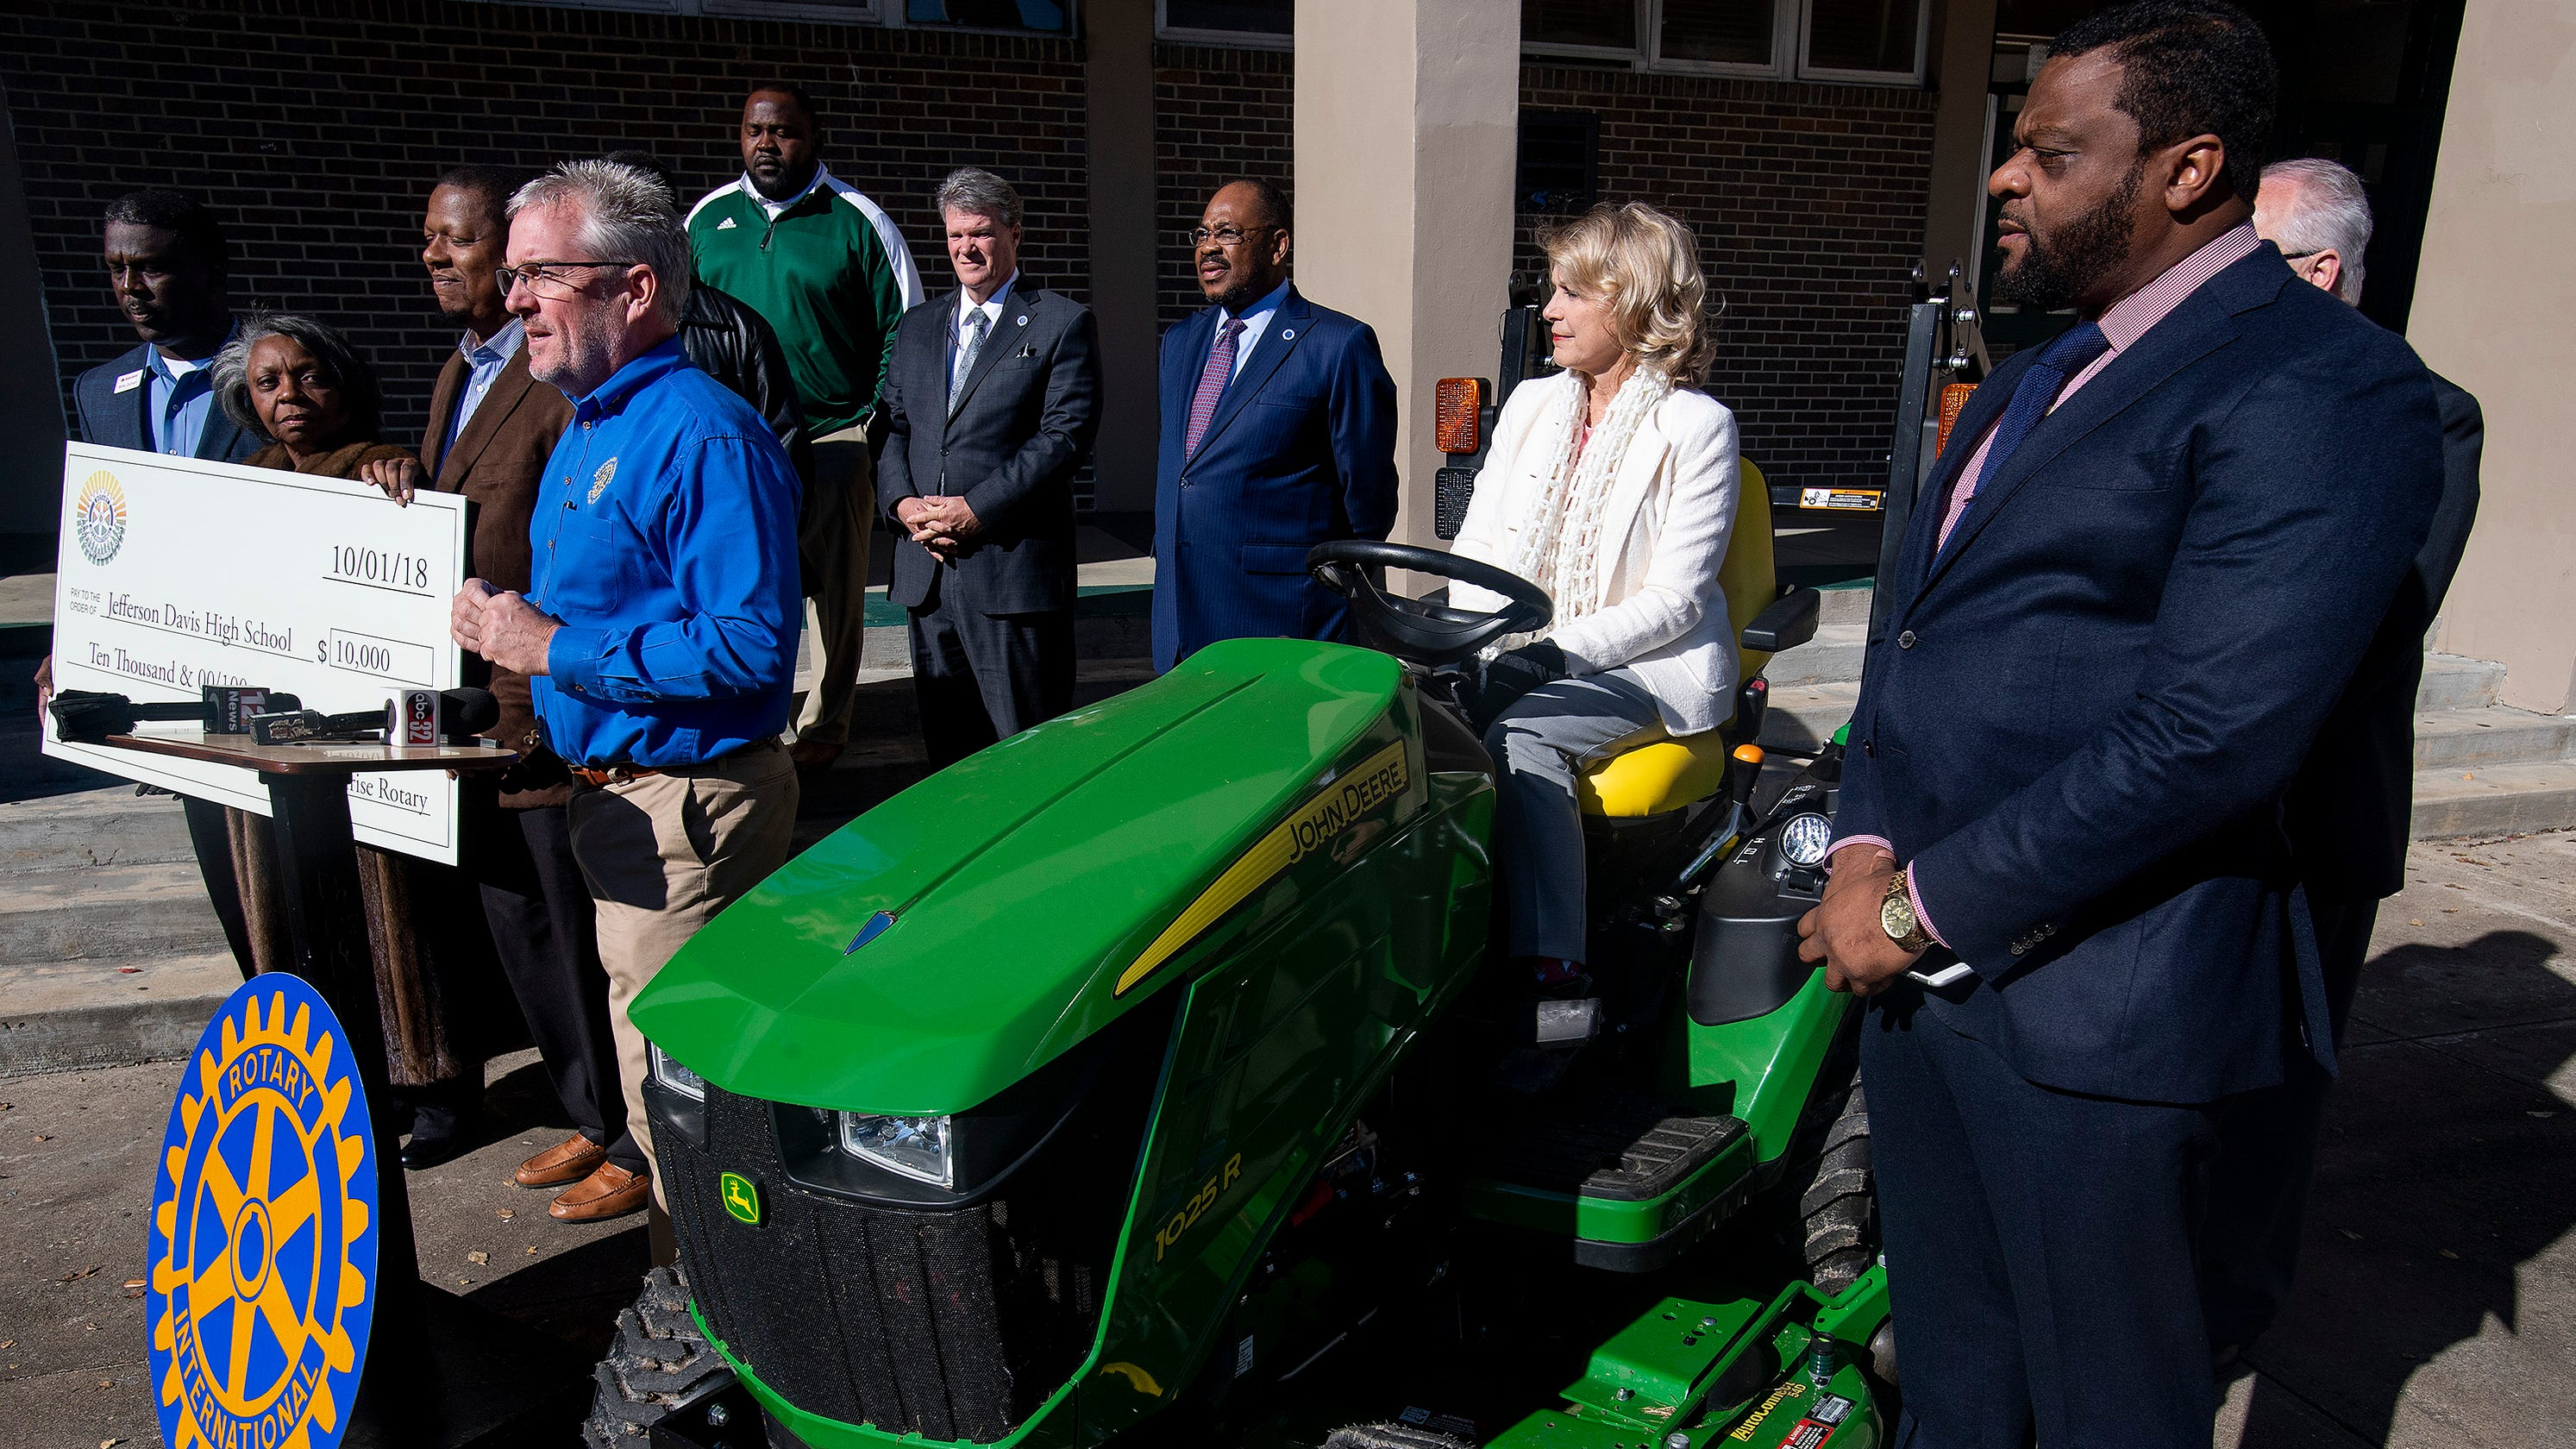 Jeff Davis High receives new tractor thanks to Rotary Club and